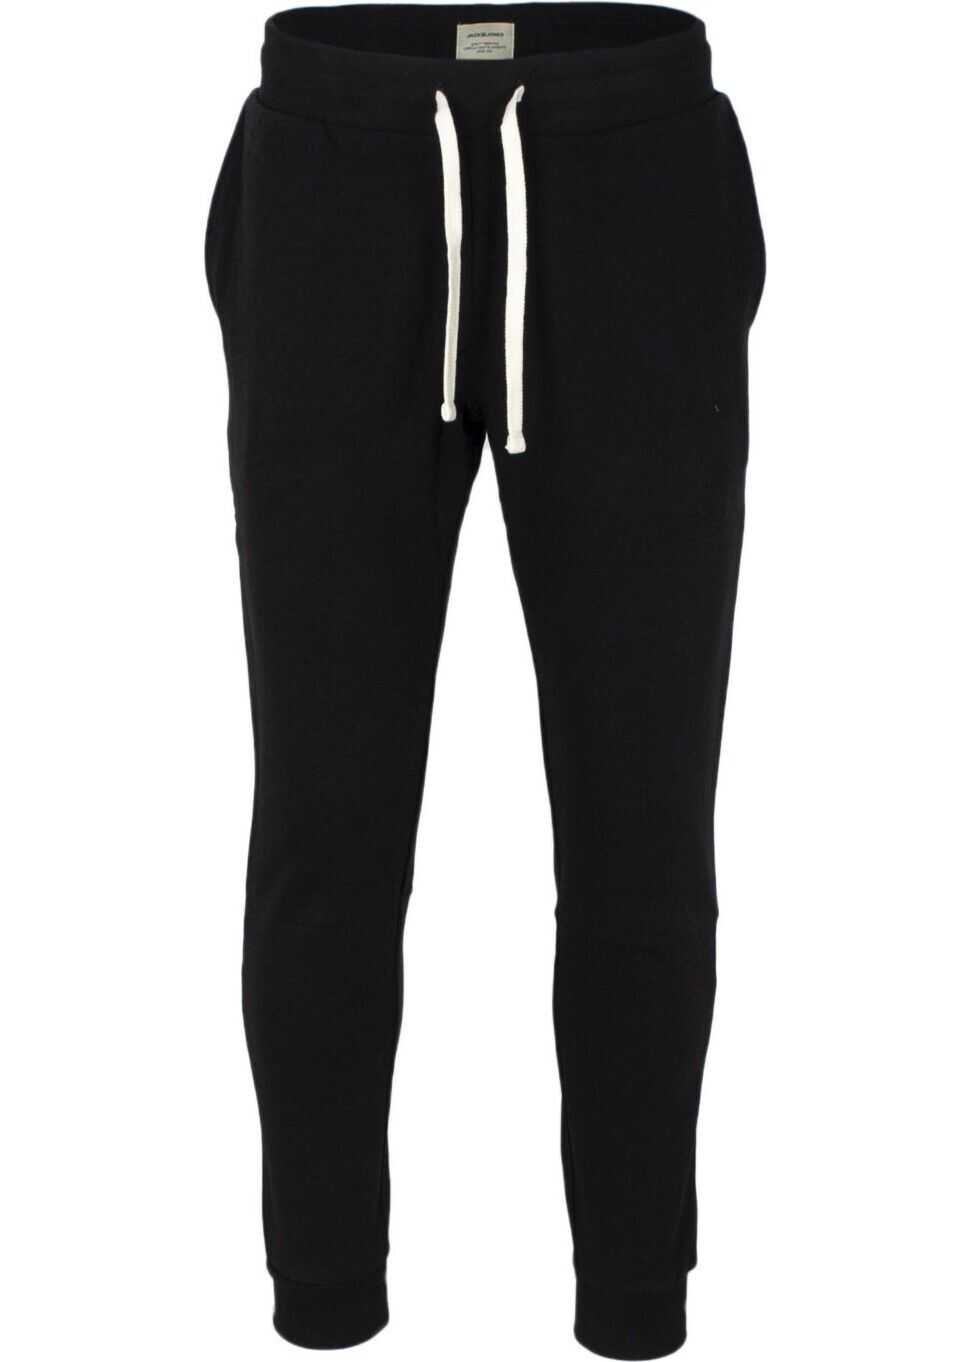 JACK & JONES 12136887Blk Cotton Joggers BLACK